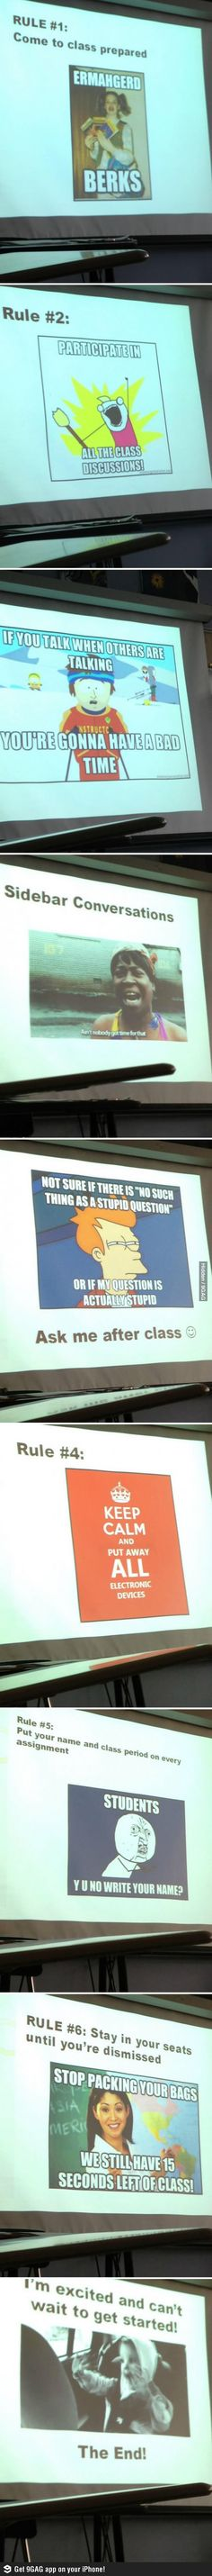 Best class expectations lecture ever. If only my teachers were this fun...